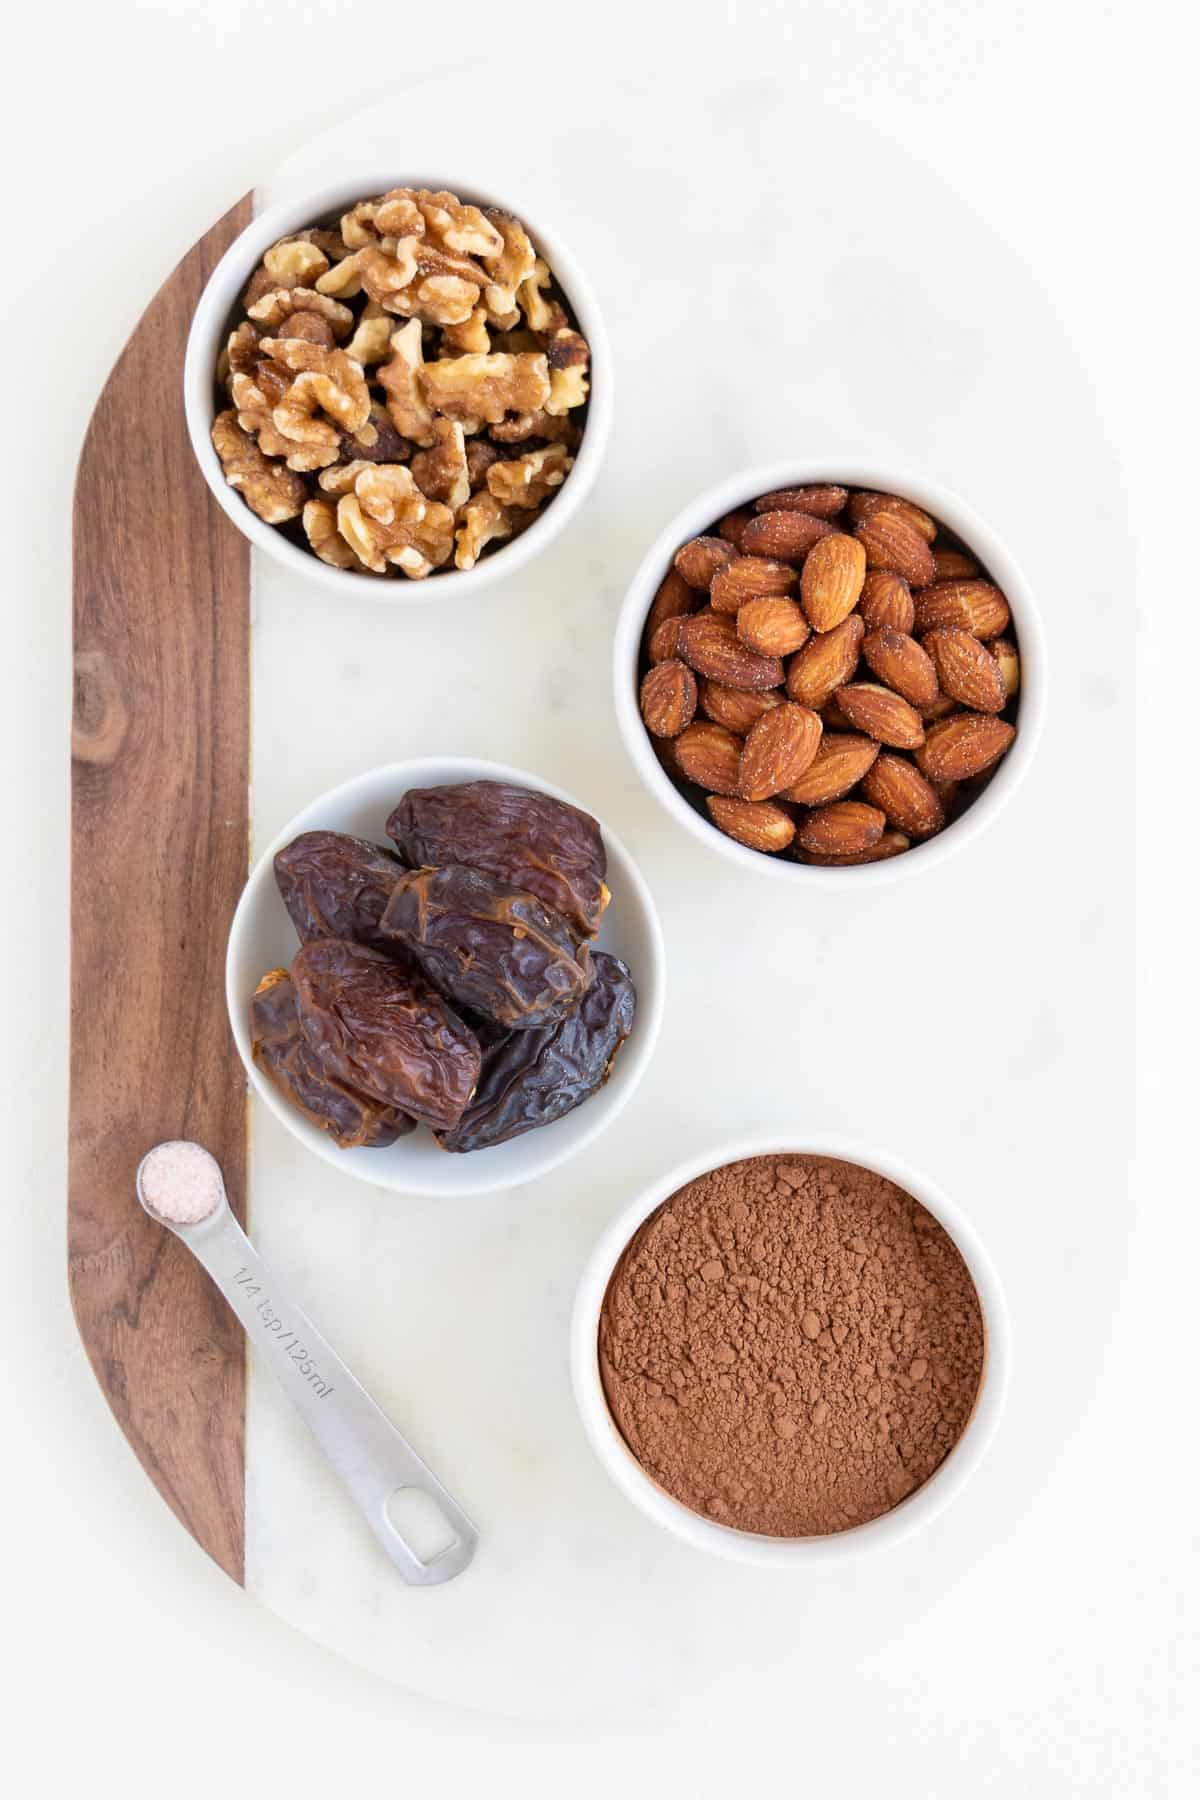 white bowls filled with walnuts, almonds, dates, and cacao powder on a white marble cutting board